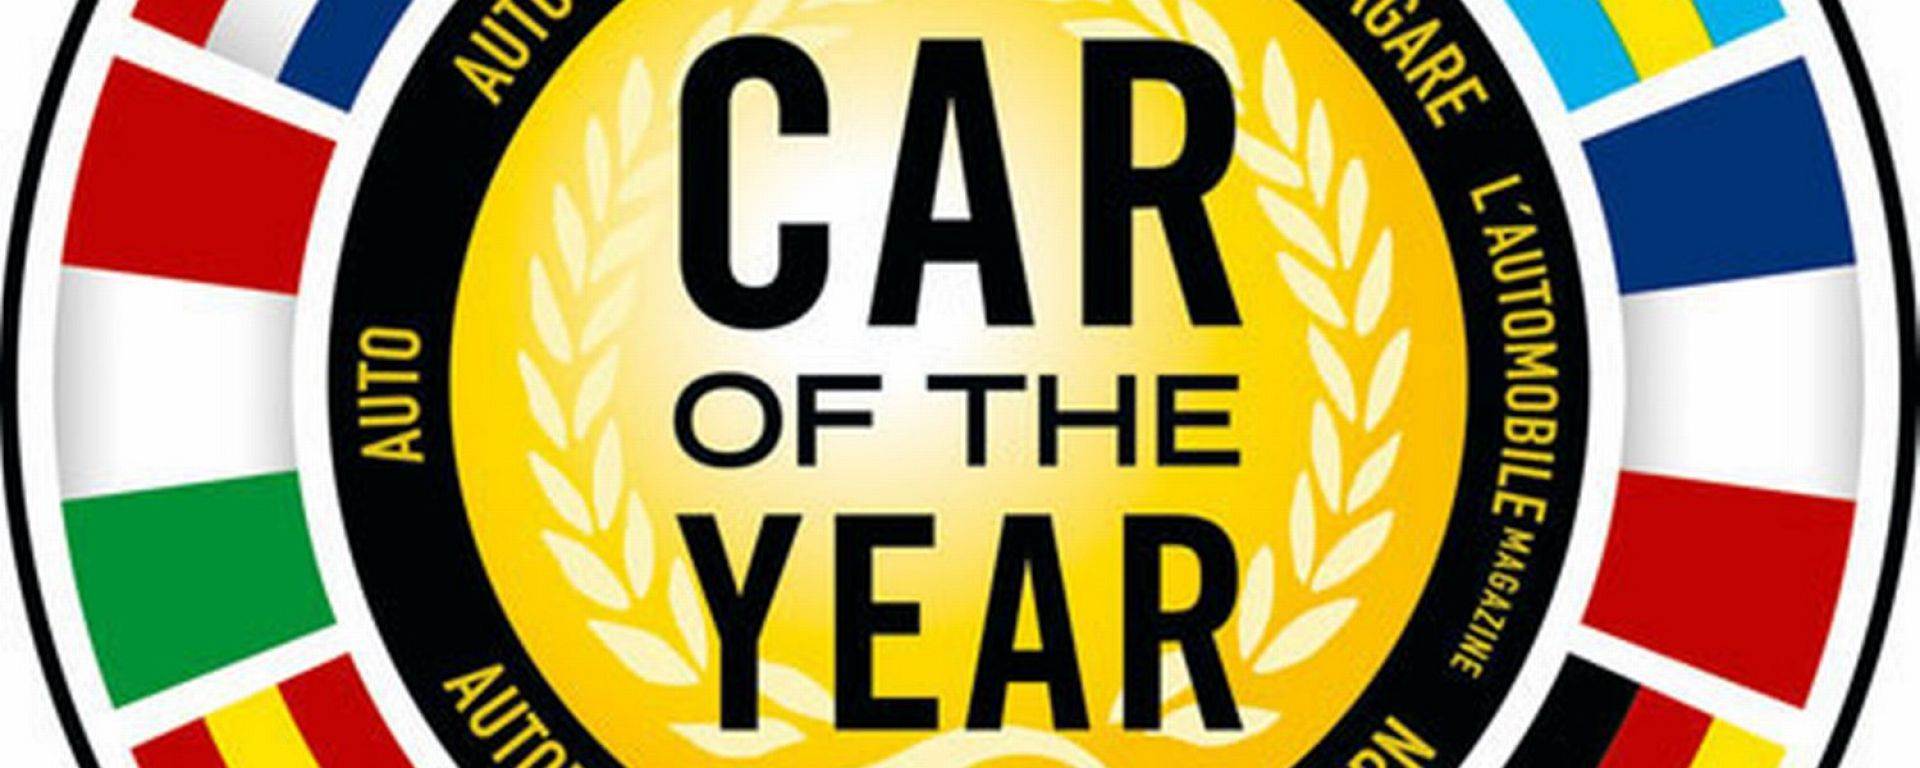 Car of the Year 2015: le candidate